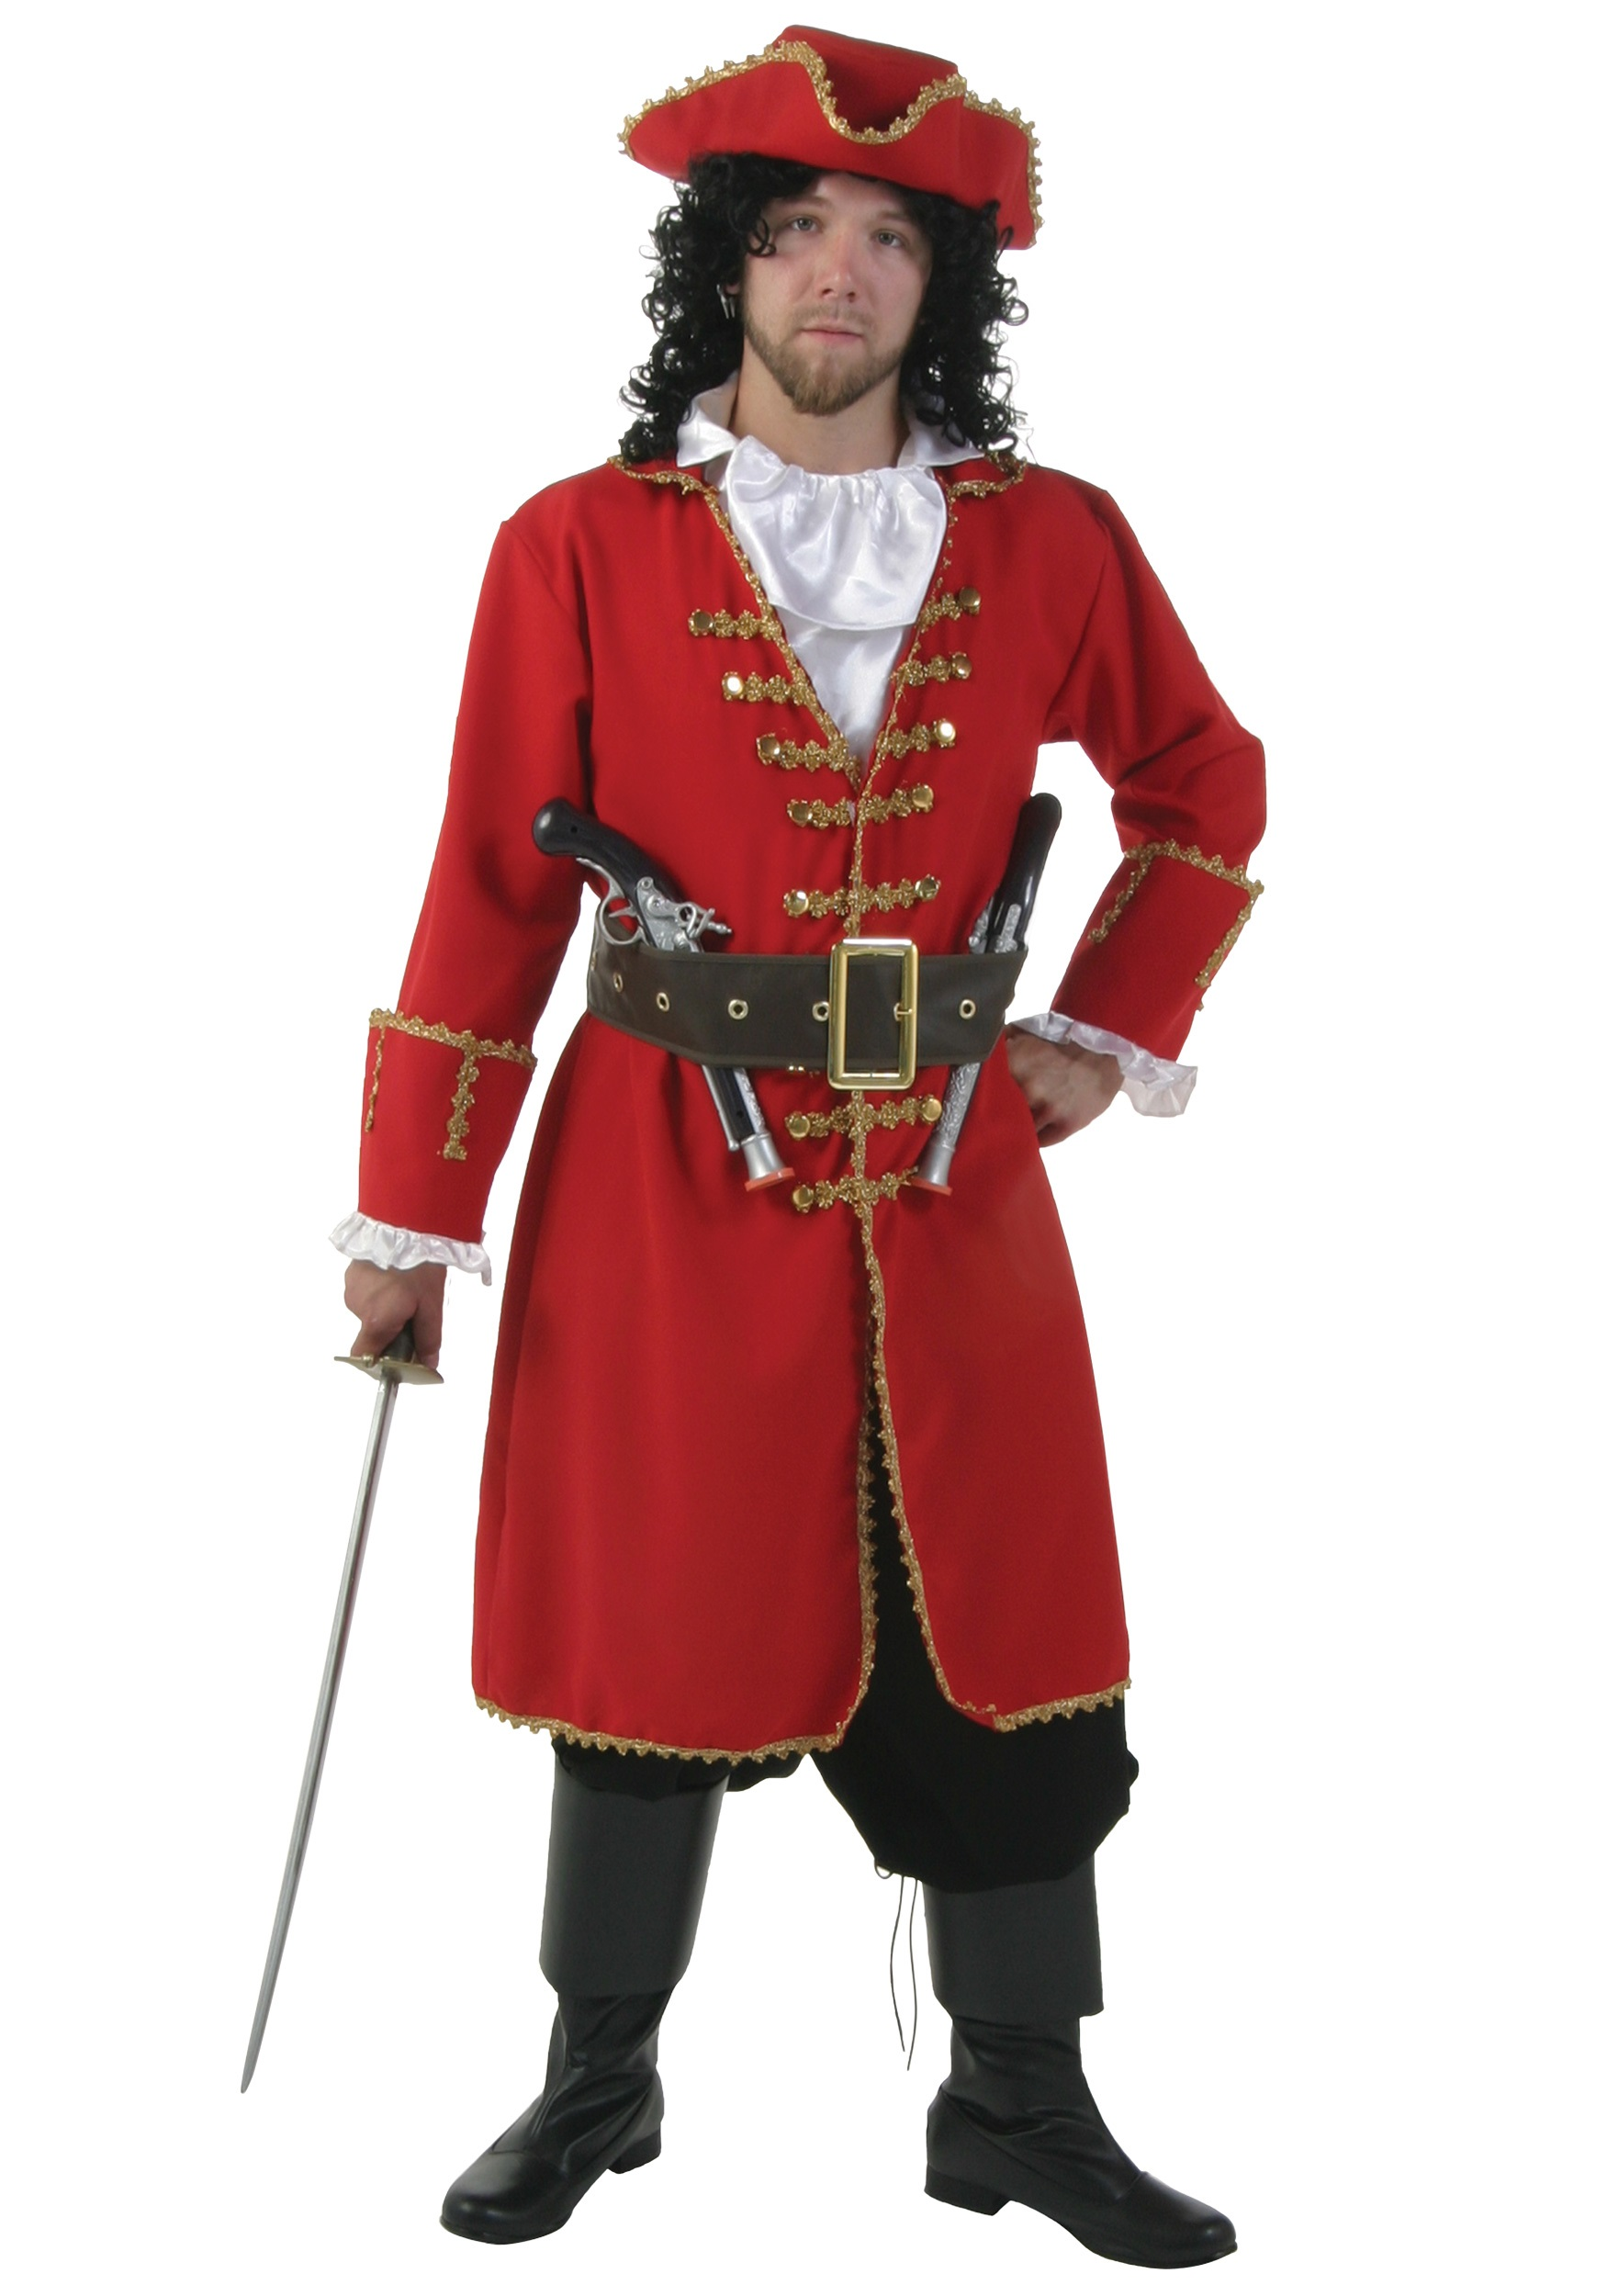 979c318cb Captain Blackheart Pirate Costume